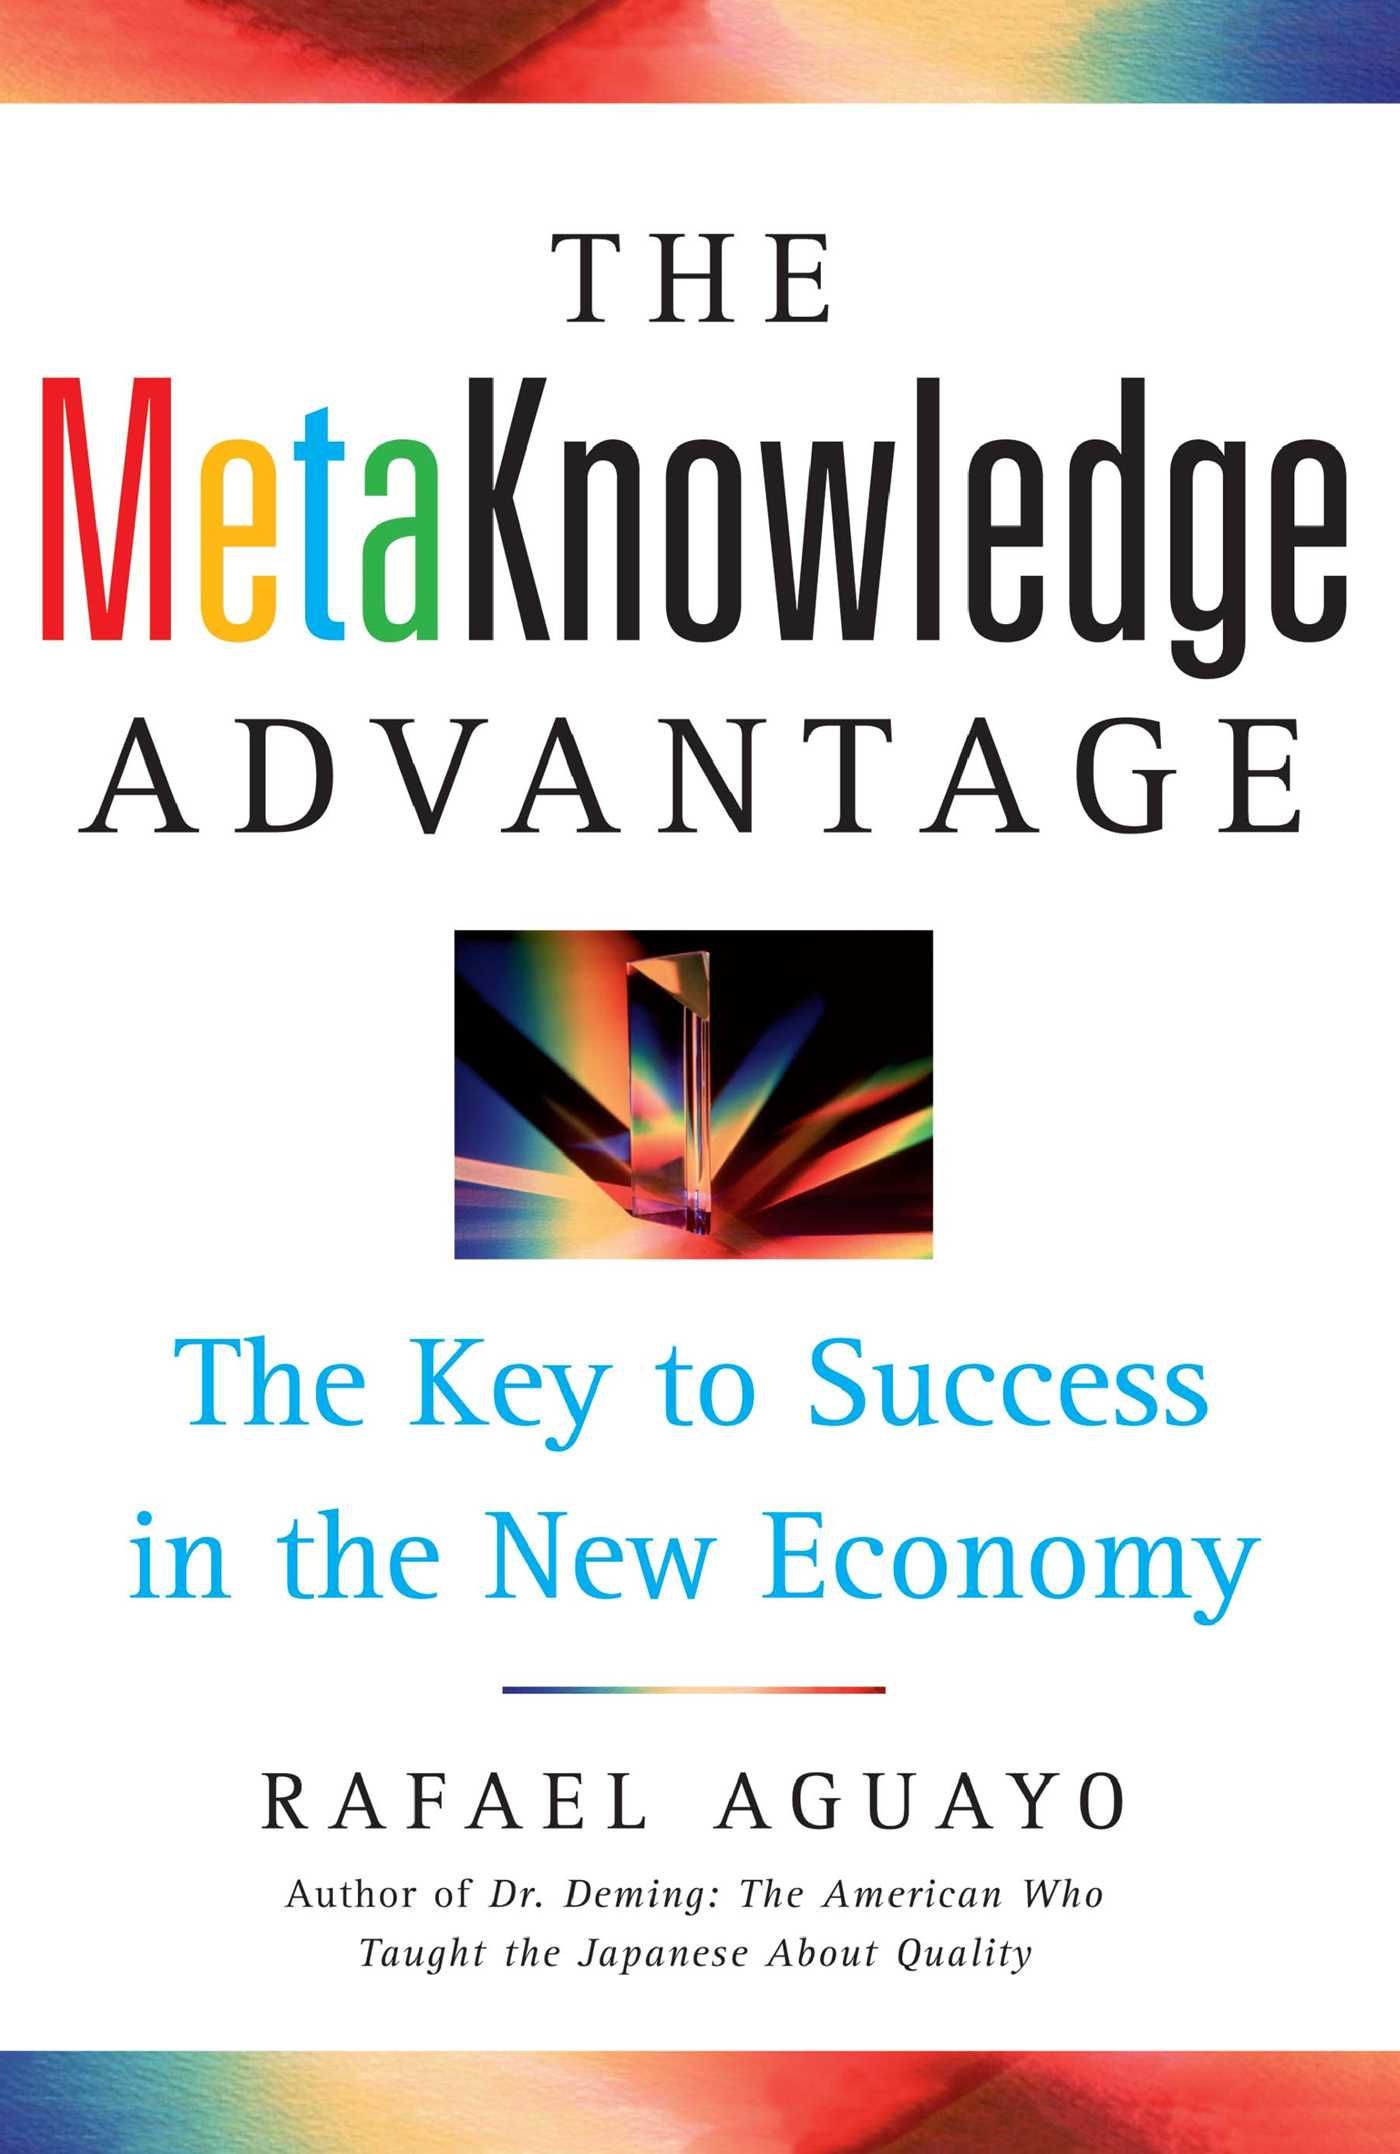 The metaknowledge advantage 9781416568285 hr